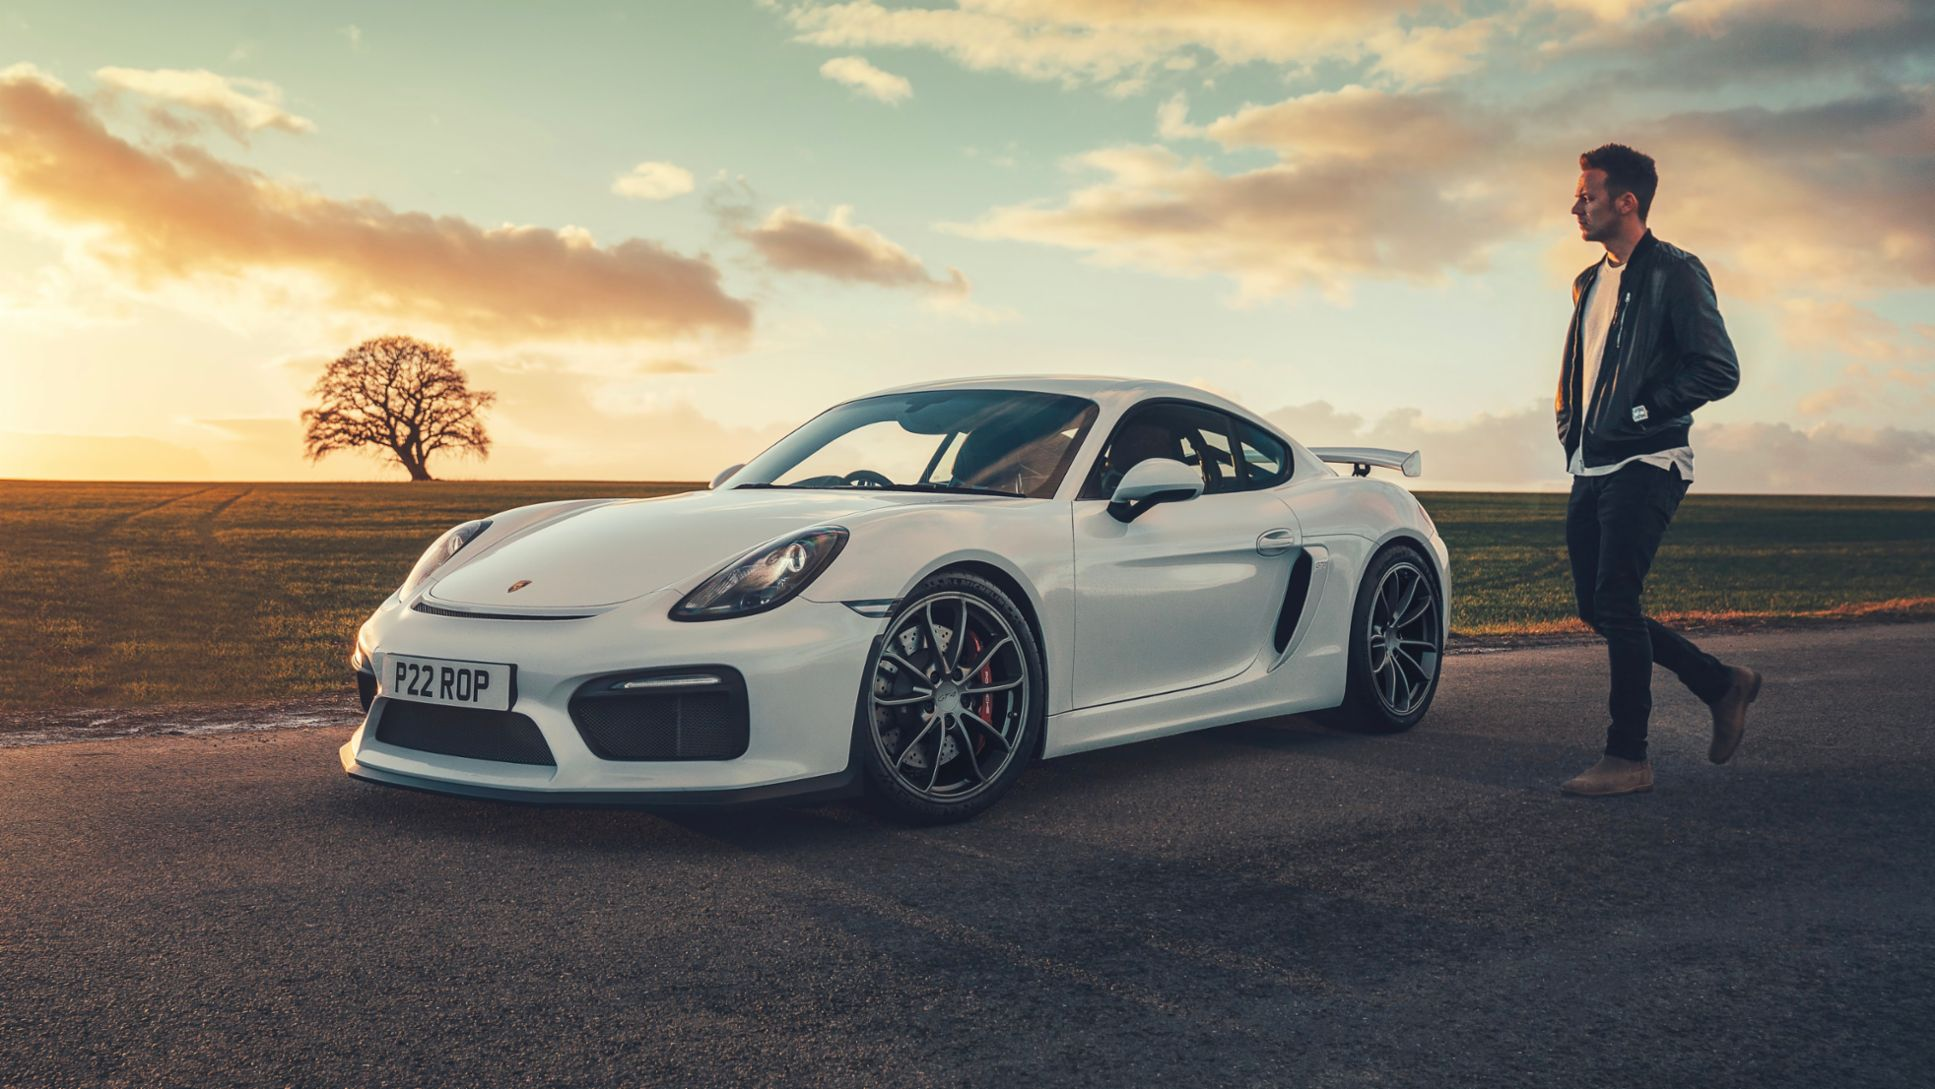 Richard Pardon, 718 Cayman GT4, 2020, Porsche AG